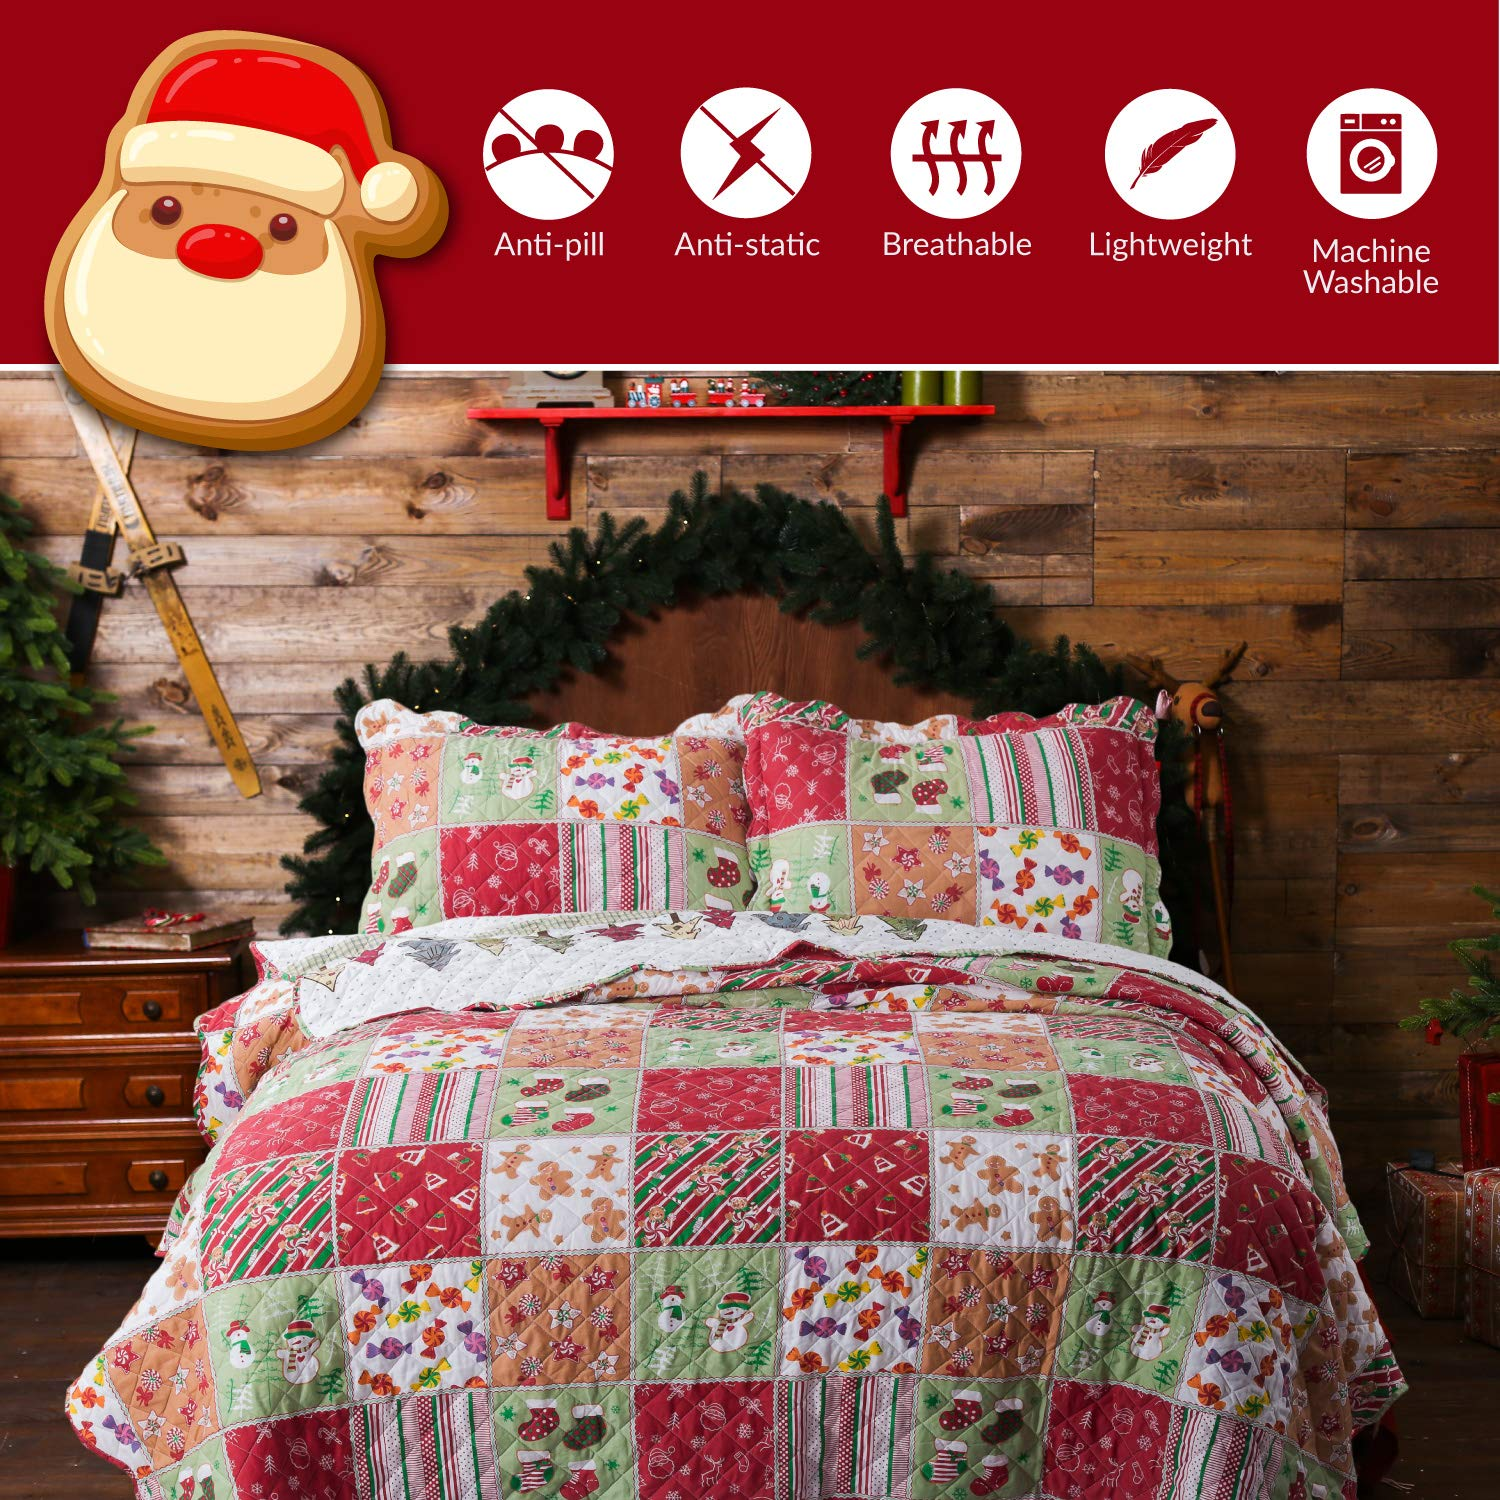 Bedsure Christmas Quilt Set Full/Queen Size (90 x 96 inches) - Multicolor Printed Pattern - Soft Microfiber Lightweight Coverlet Bedspread for All Season